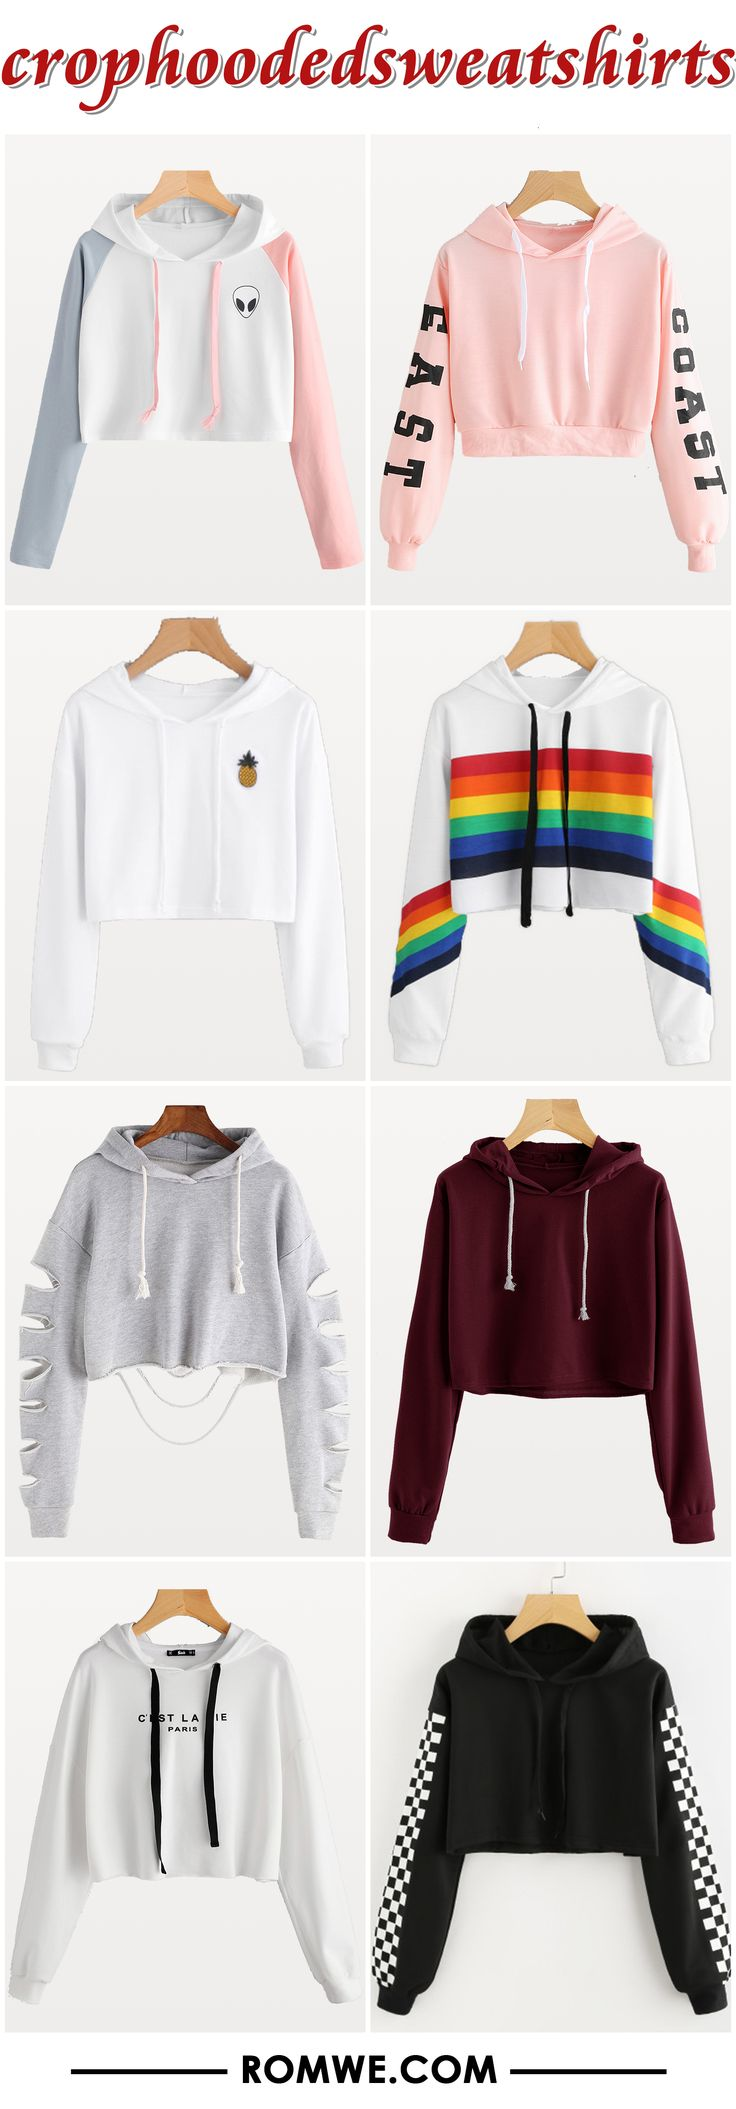 crop hooded sweatshirts from romwe.com